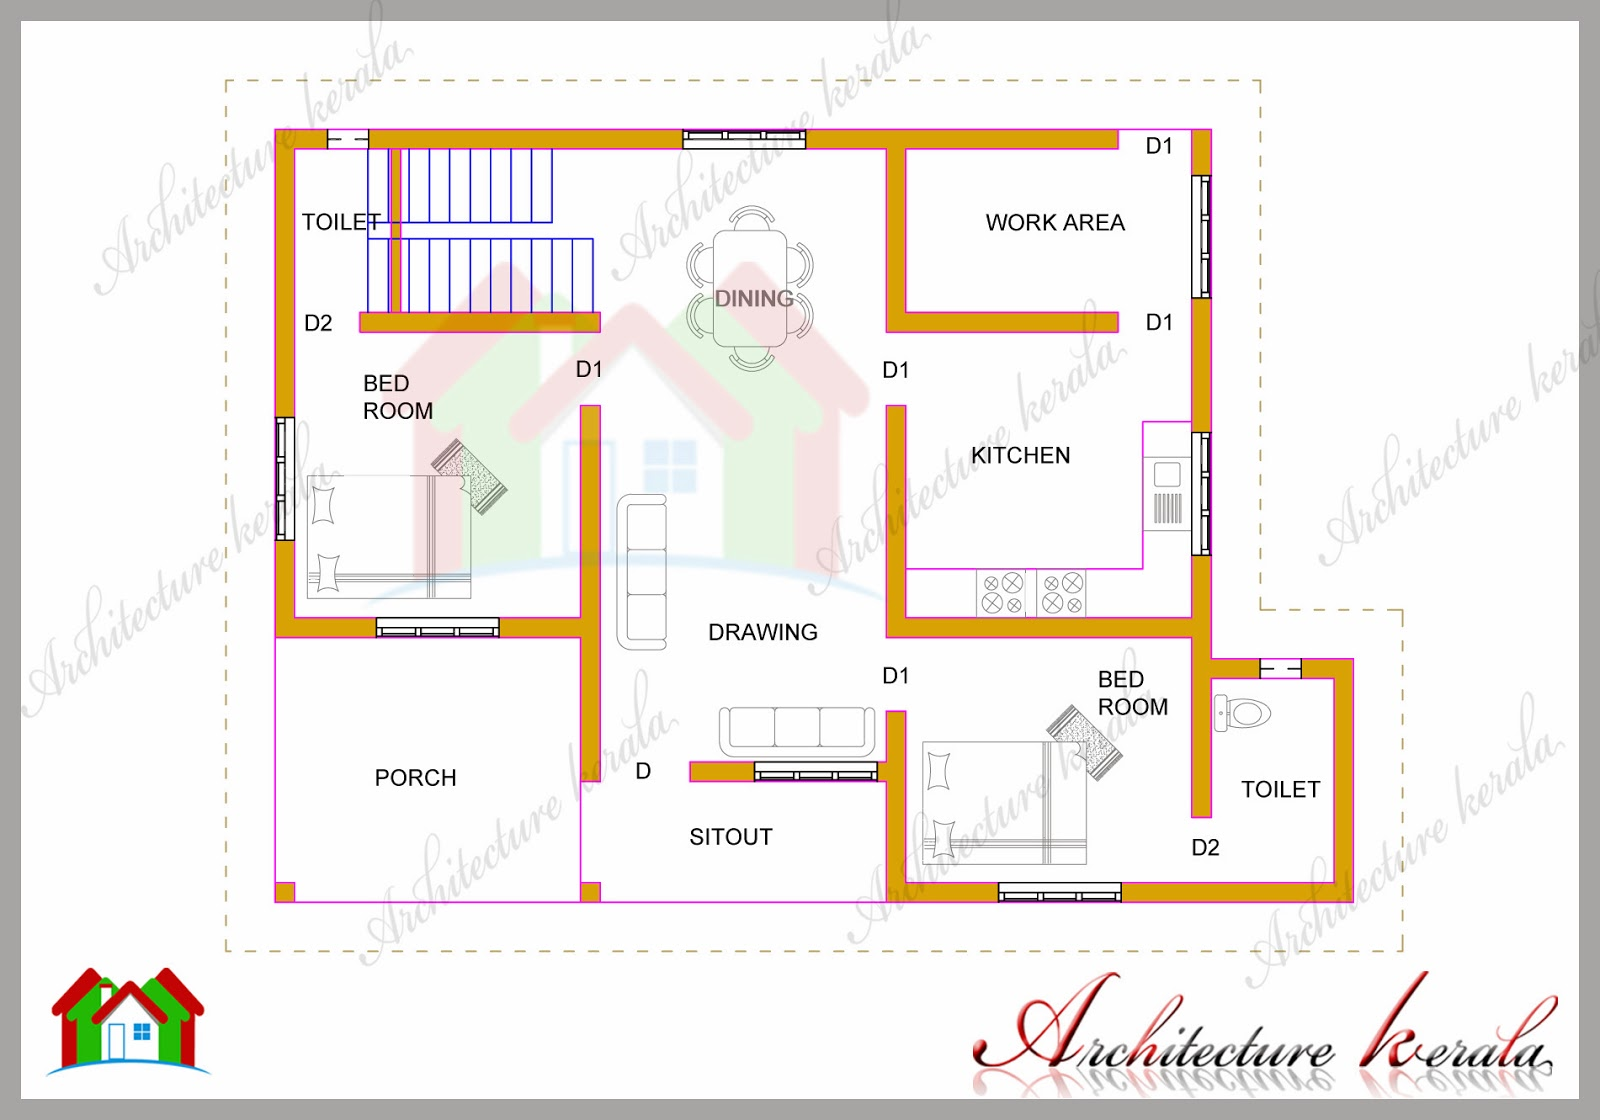 1200 SQUARE FEET TWO BEDROOM HOUSE PLAN AND ELEVATION ARCHITECTURE KERALA